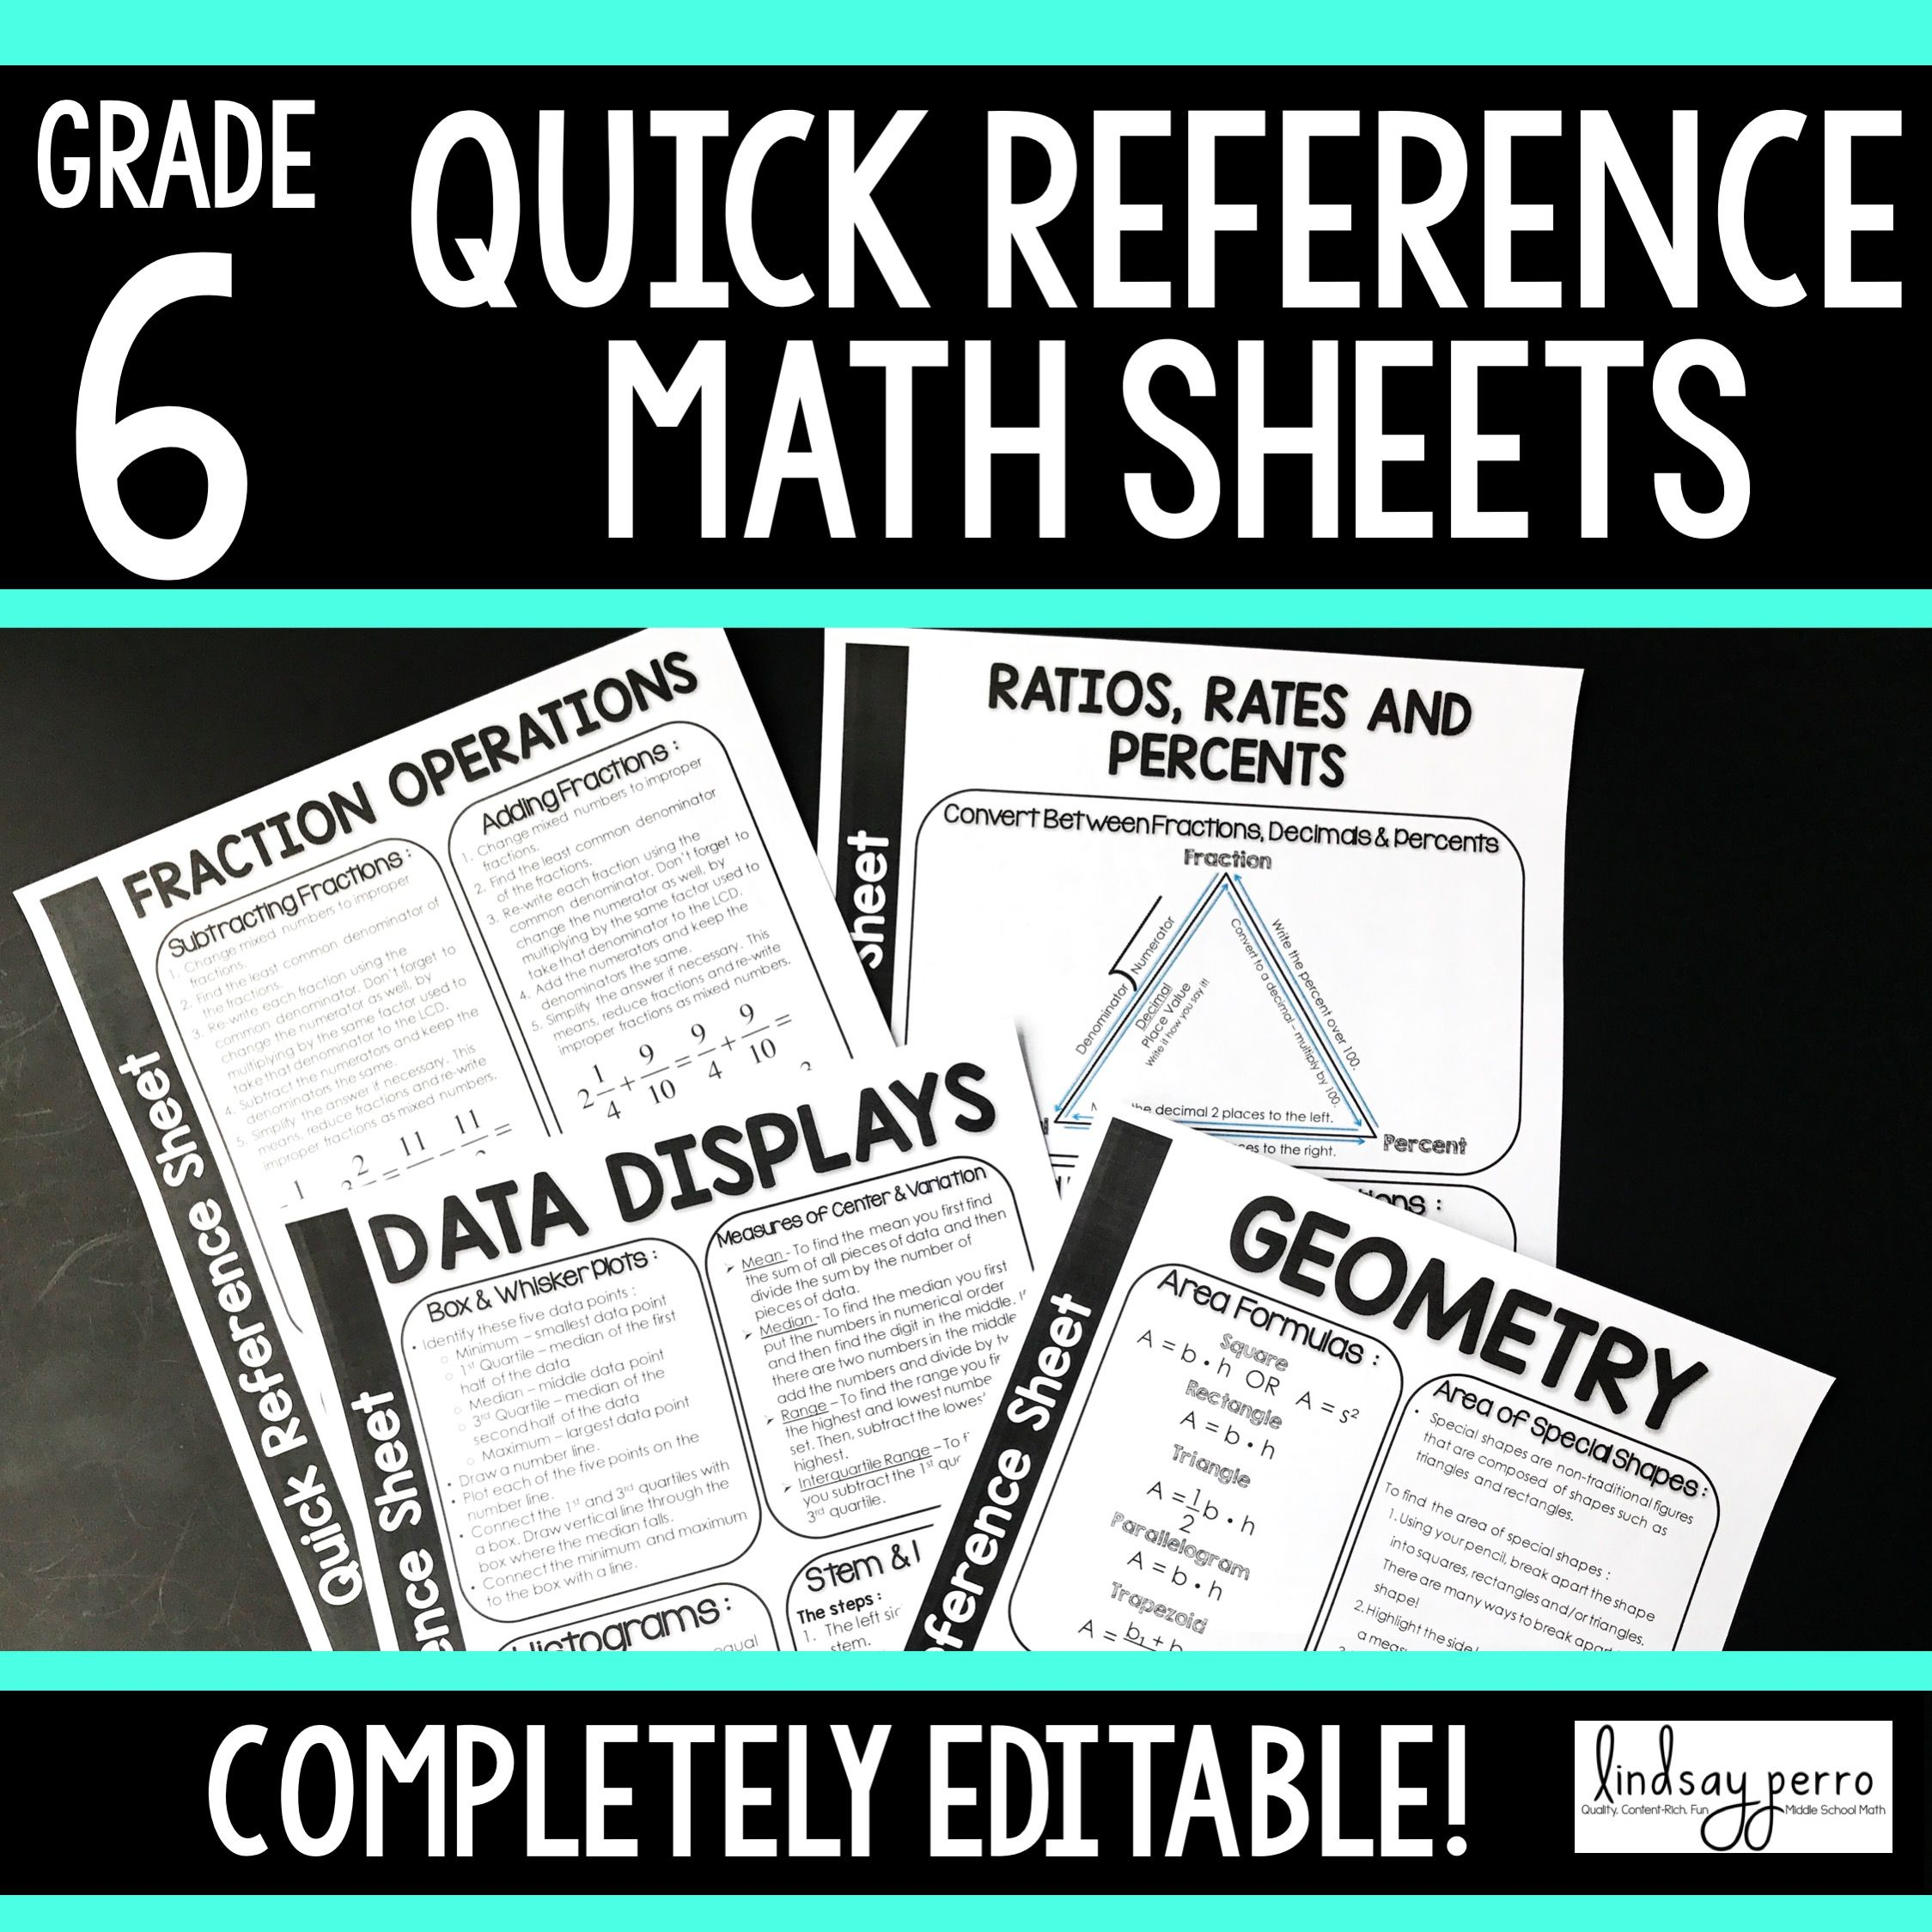 6th Grade Math Quick Reference Sheets | Math skills, Homework and Math